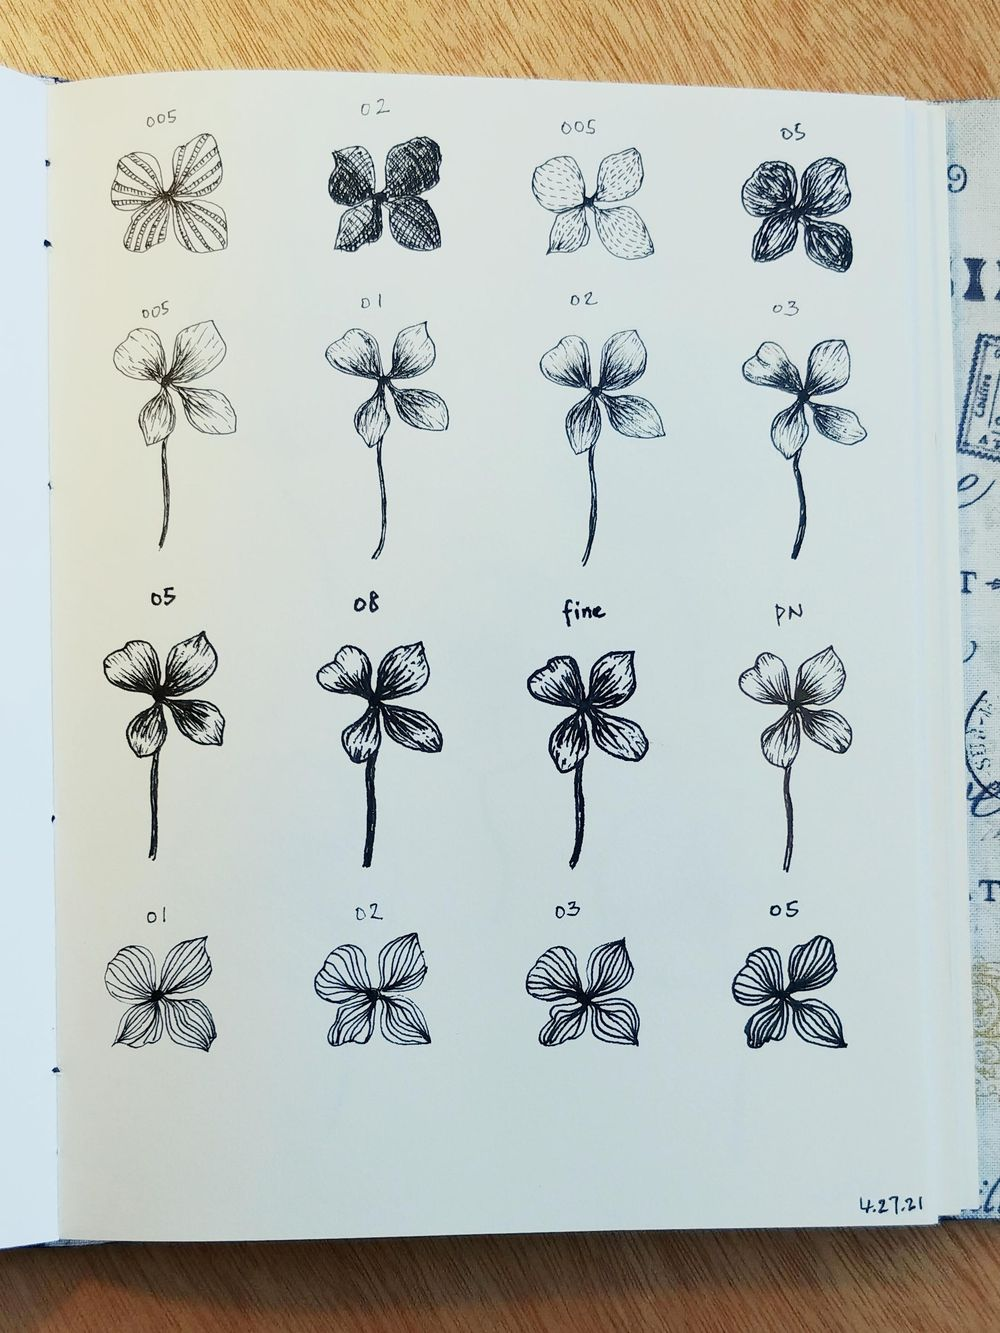 Line Drawings of Flowers | Virginia - image 2 - student project